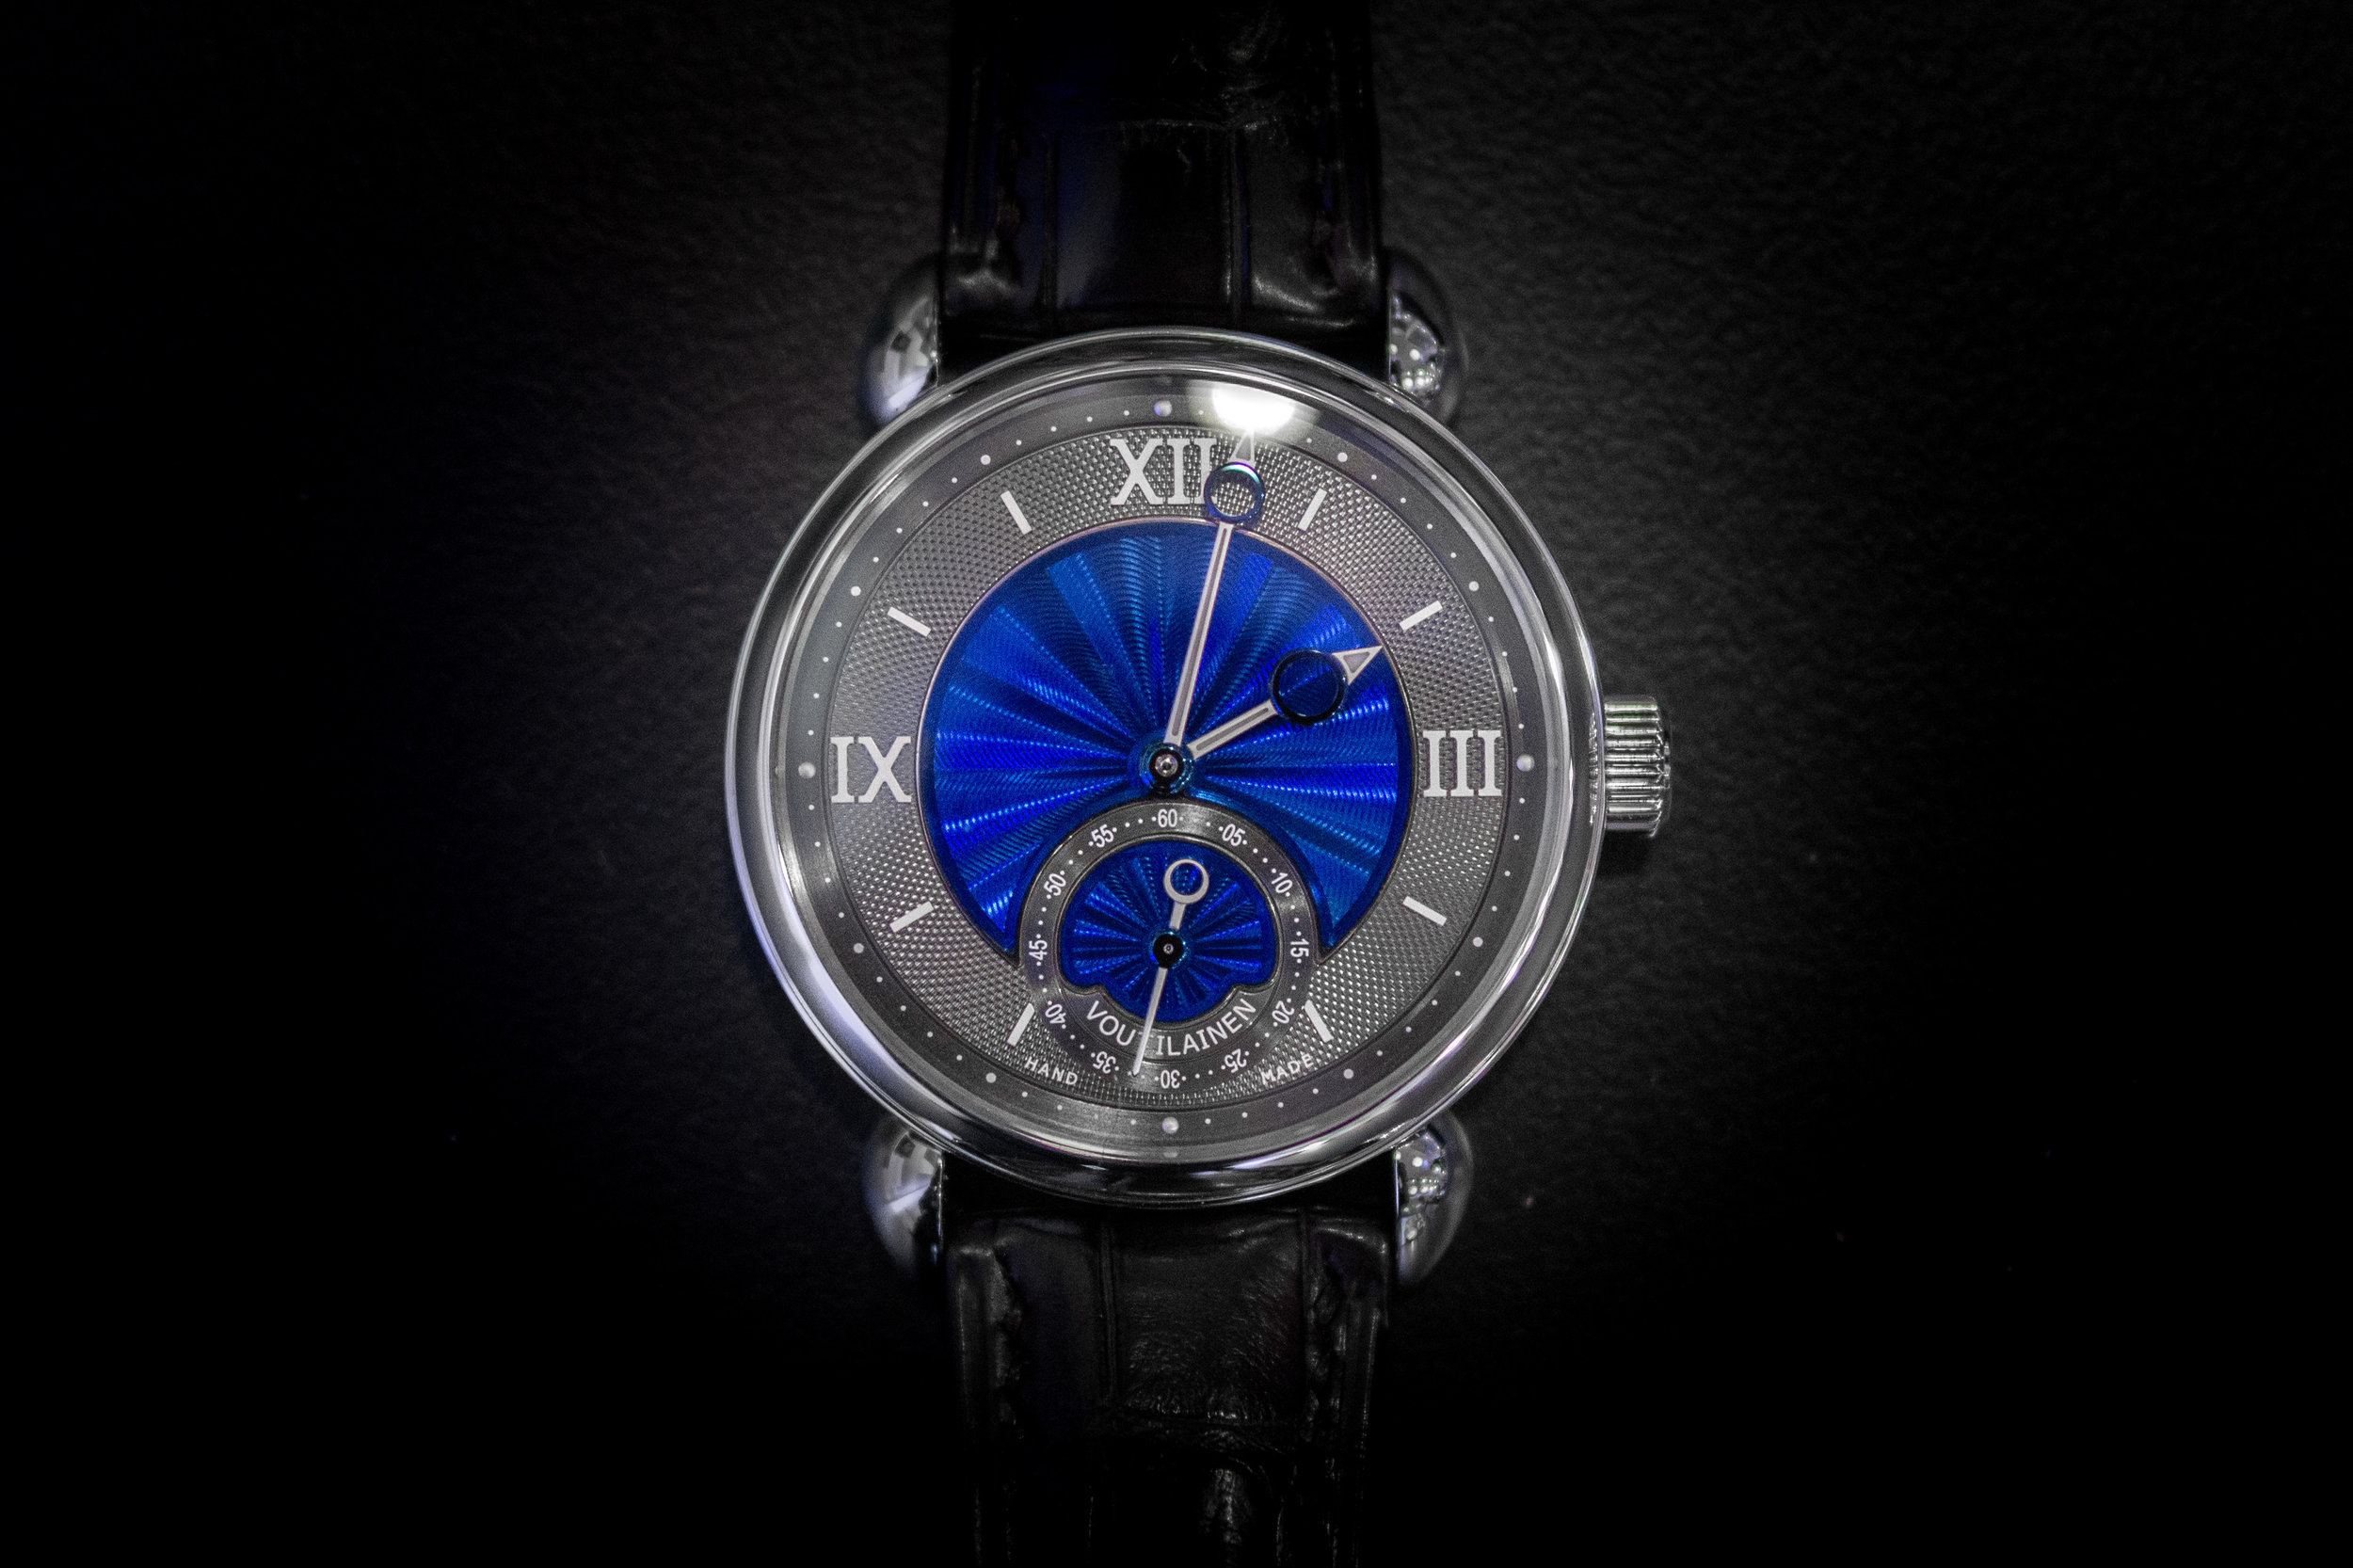 This Vingt-8 was one of the two watches Voutilainen had brought to the show.